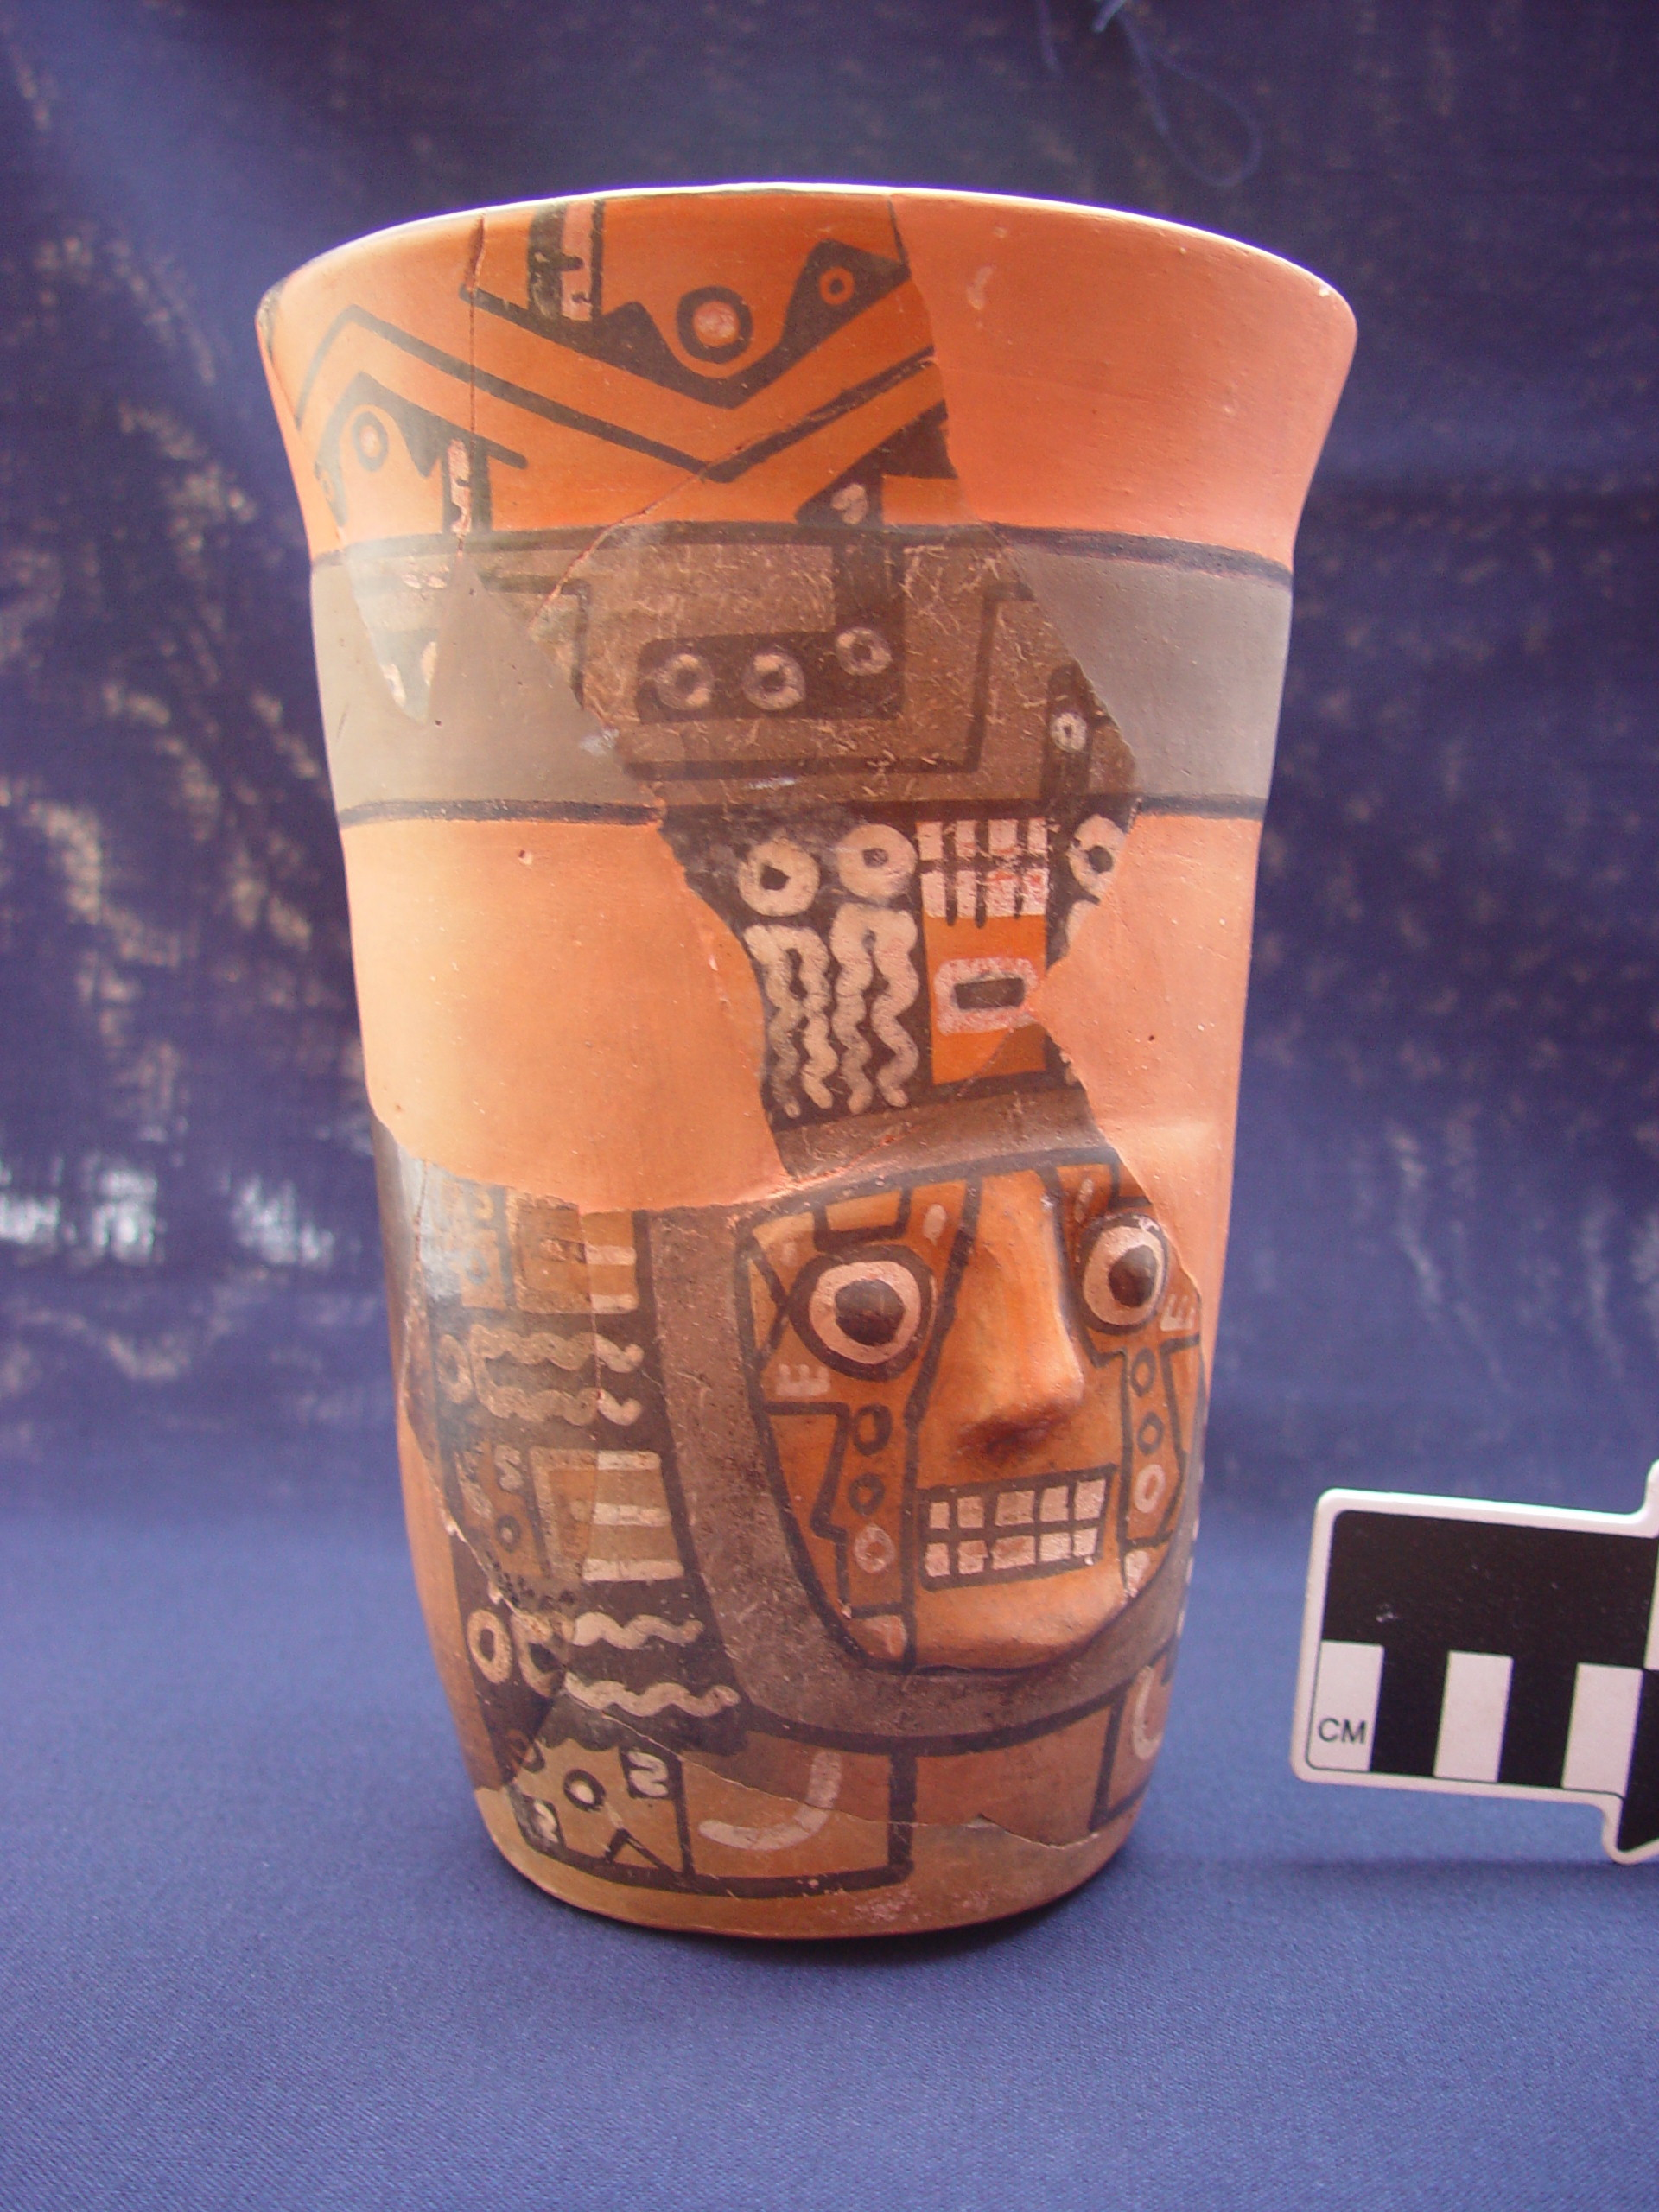 A Wari drinking vessel from Cerro Baul with a half-gallon capacity, depicting the face of a principal Wari deity, courtesy of the Cerro Baul Archaeological Project